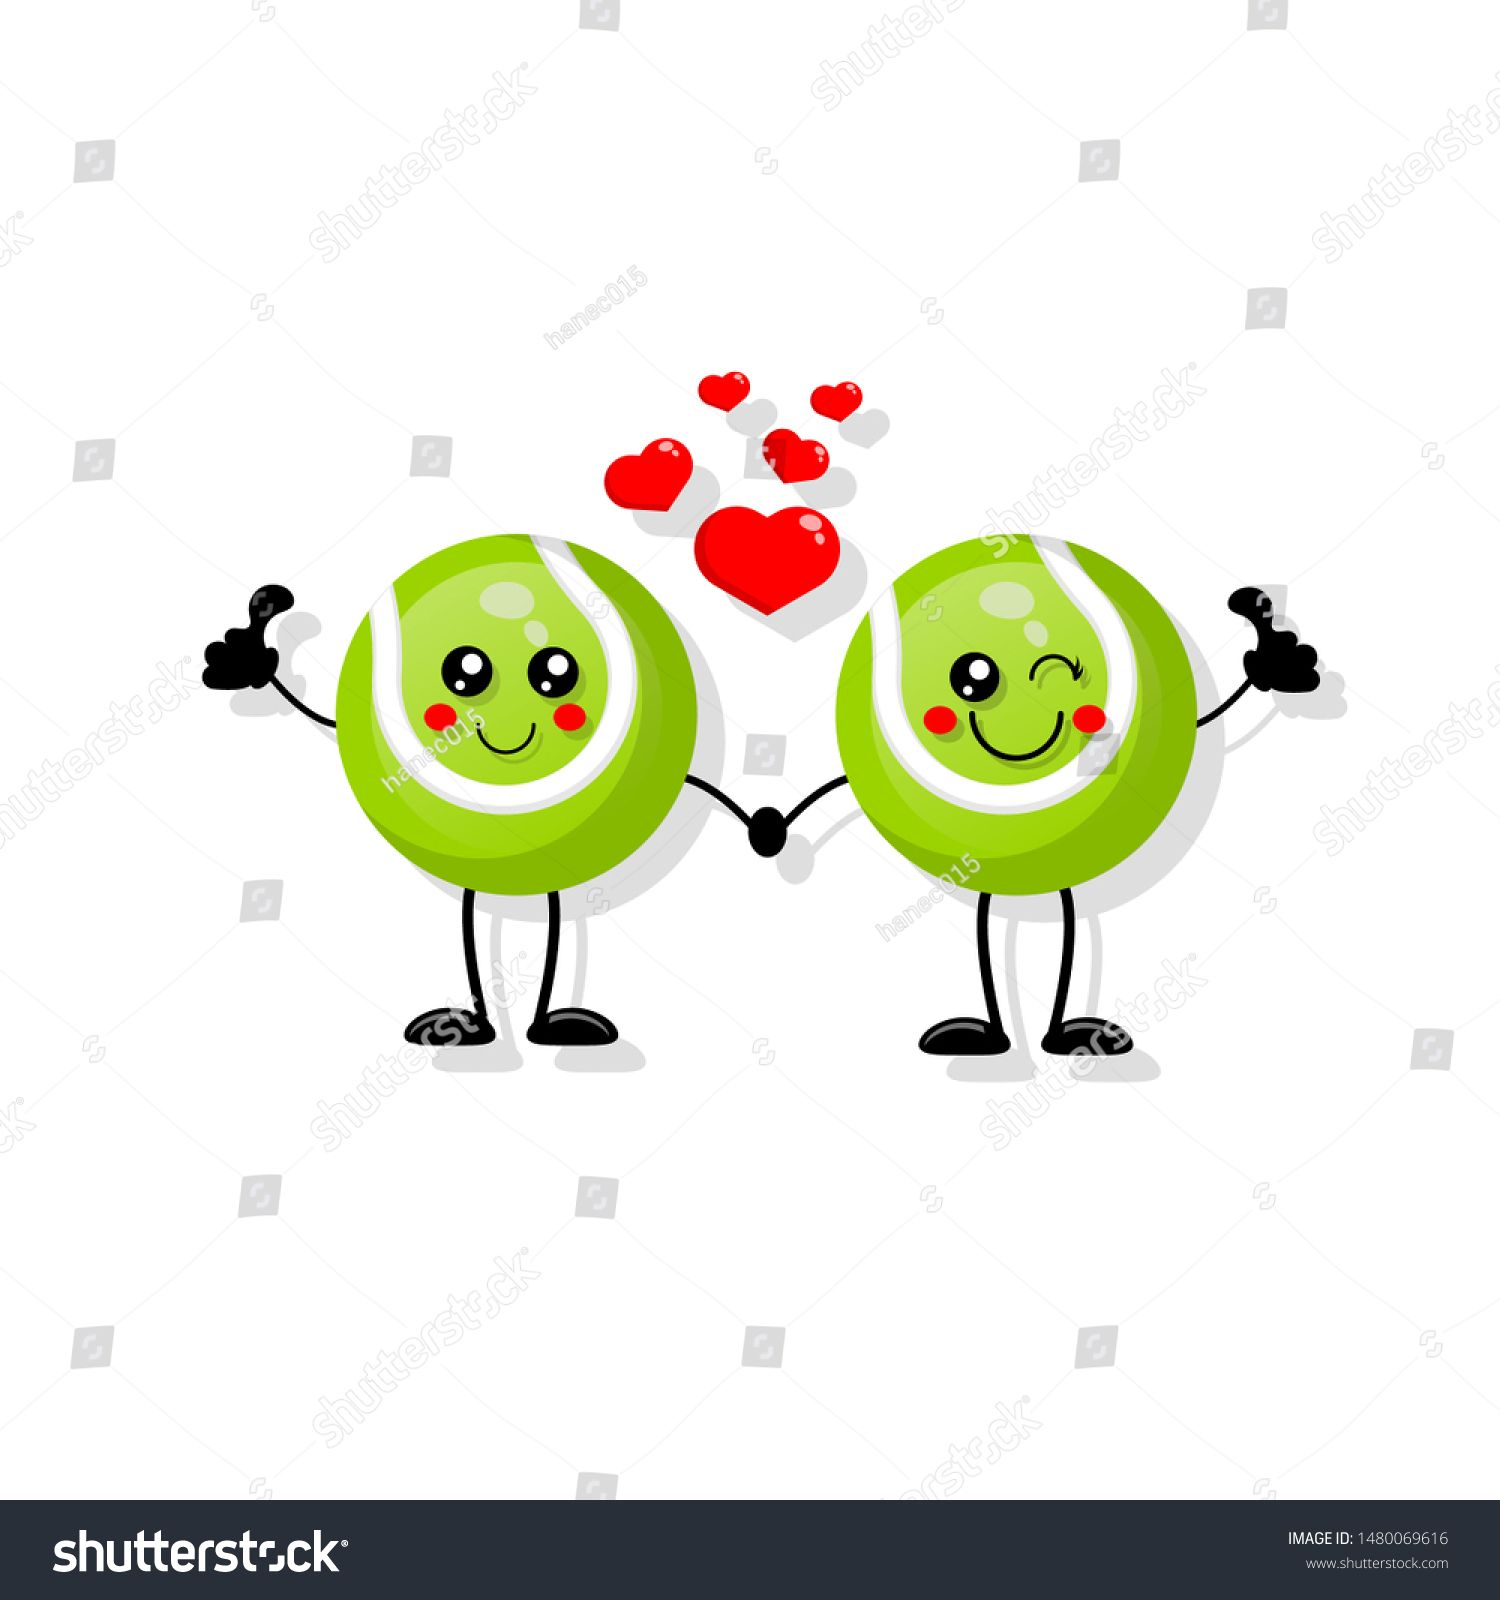 Cute Cartoon Tennis Ball In Love Tennis Ball With Giving Thumb Up Funny Friends Character Concept I Cute Cartoon Graduation Invitations Template Cartoon Kids